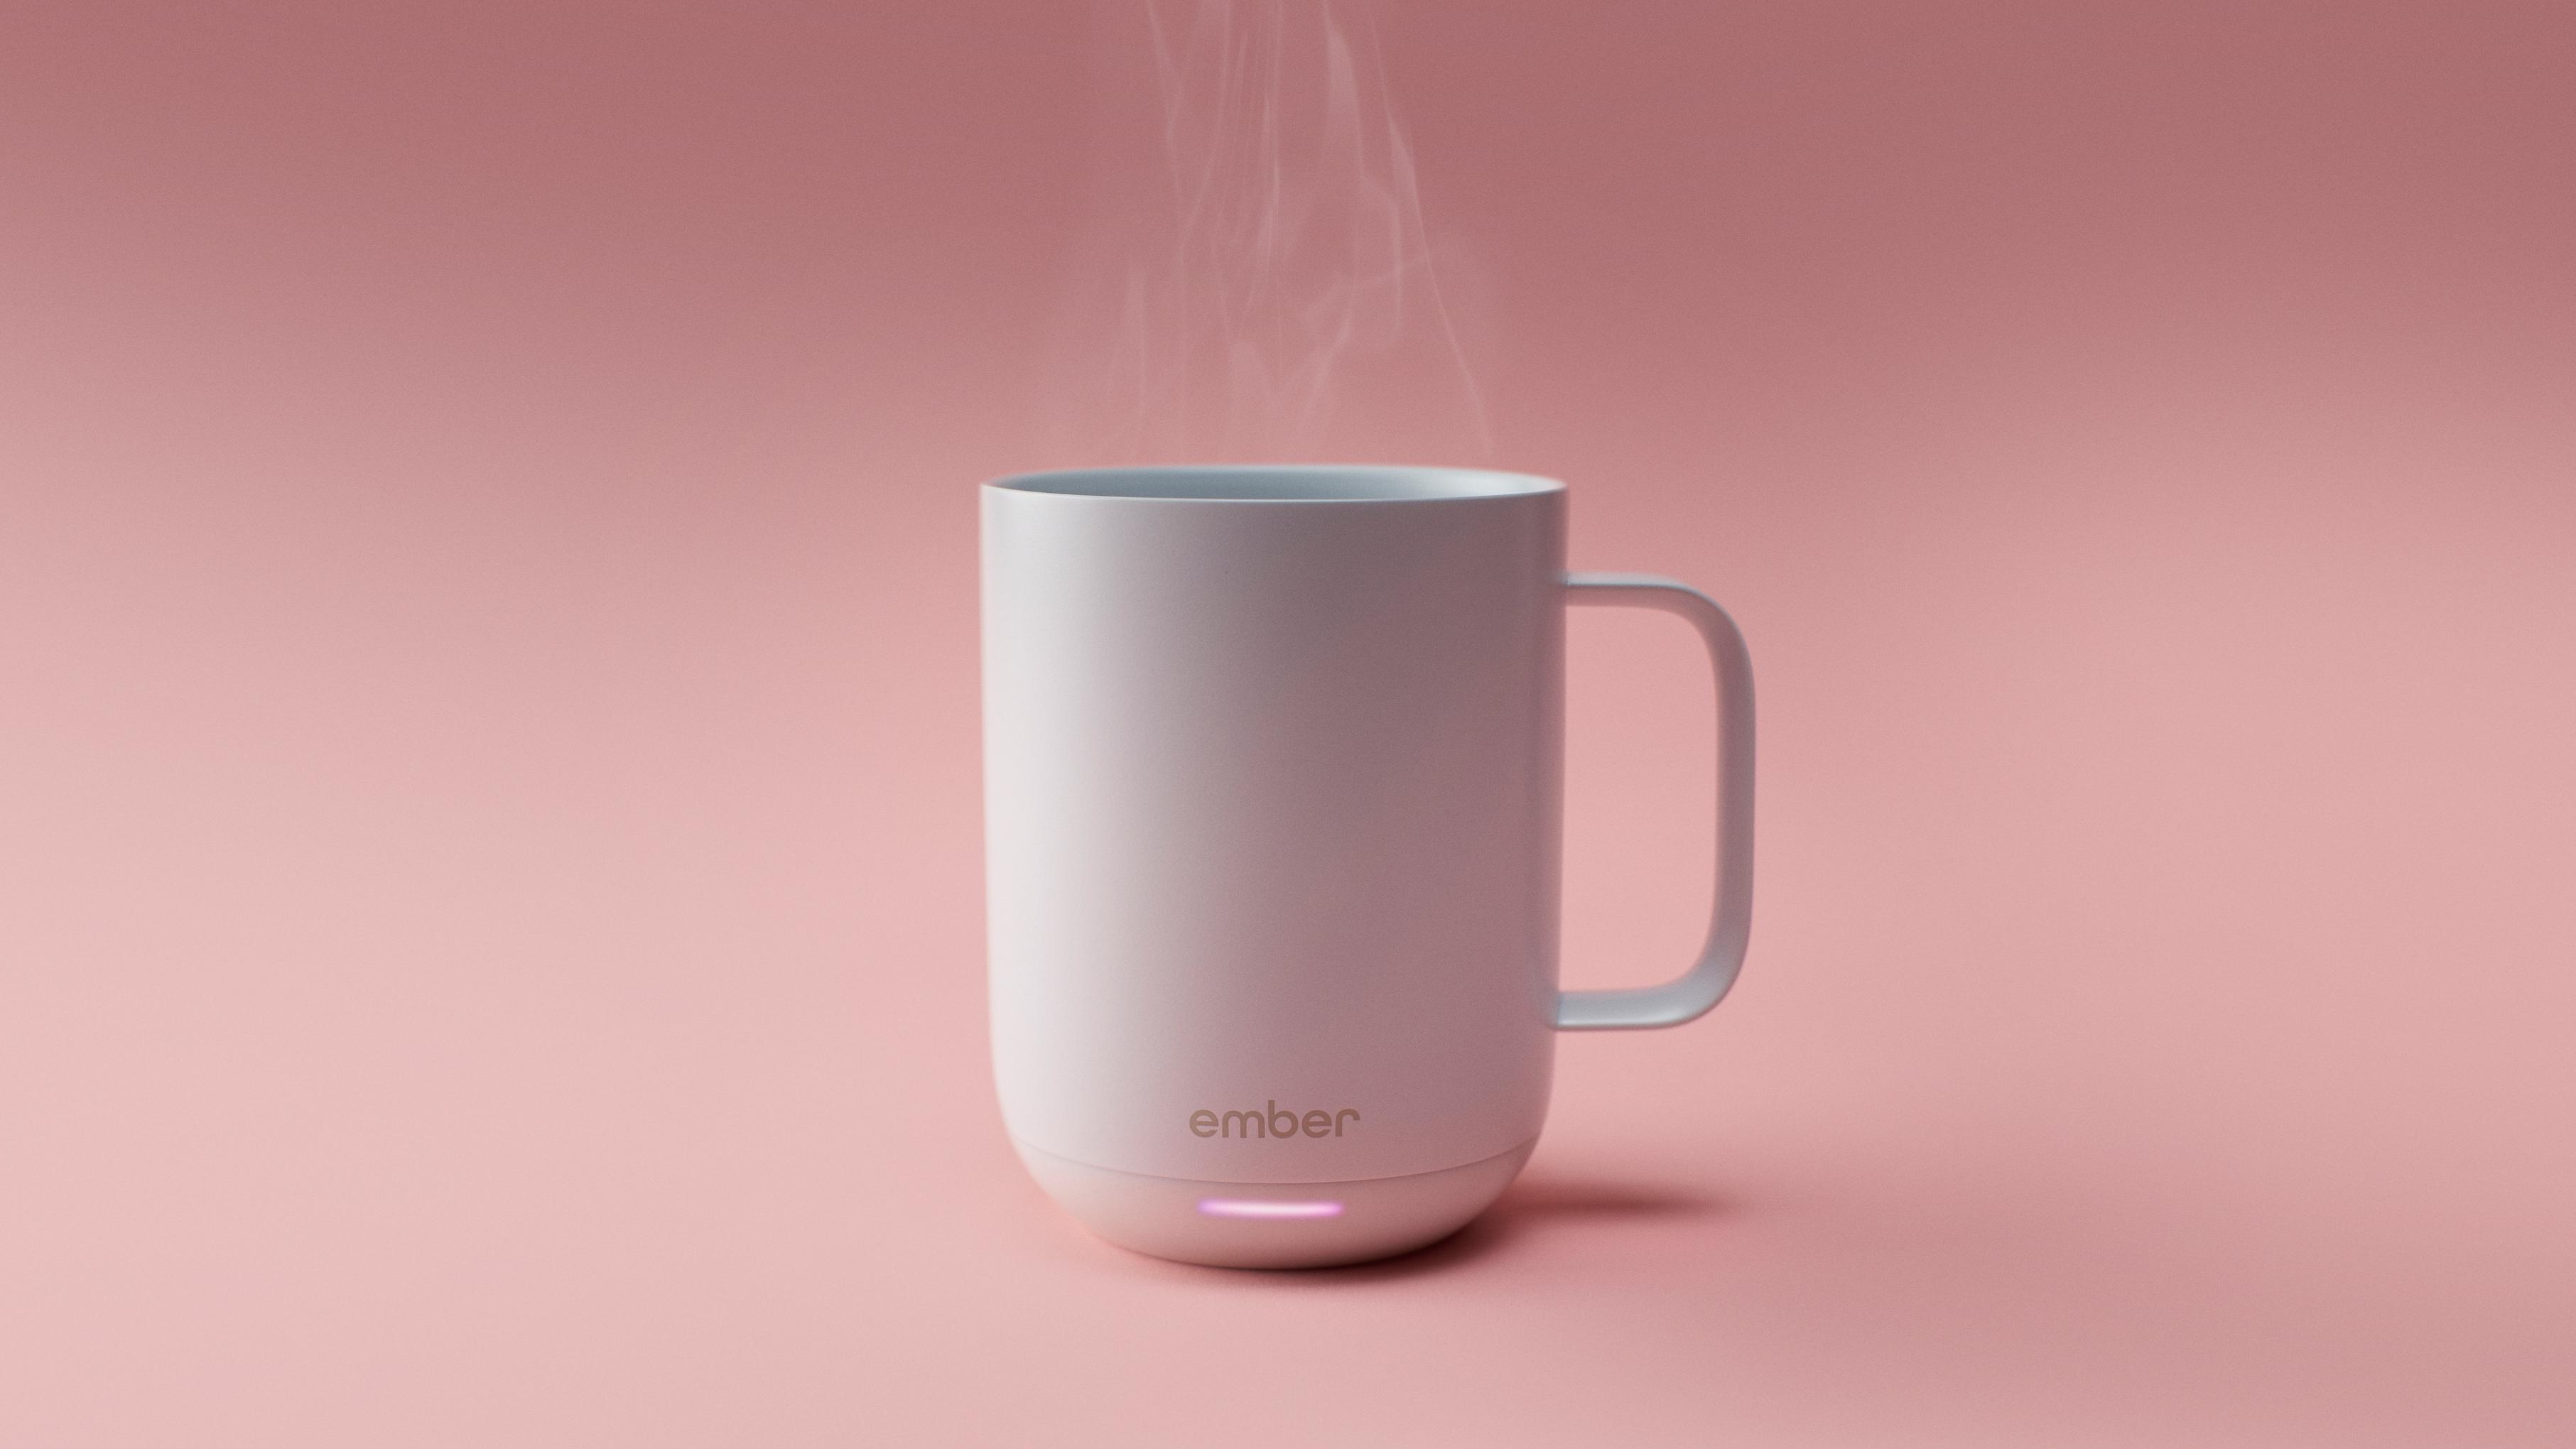 Smart cups: hot stuff or just for mugs? | 1843